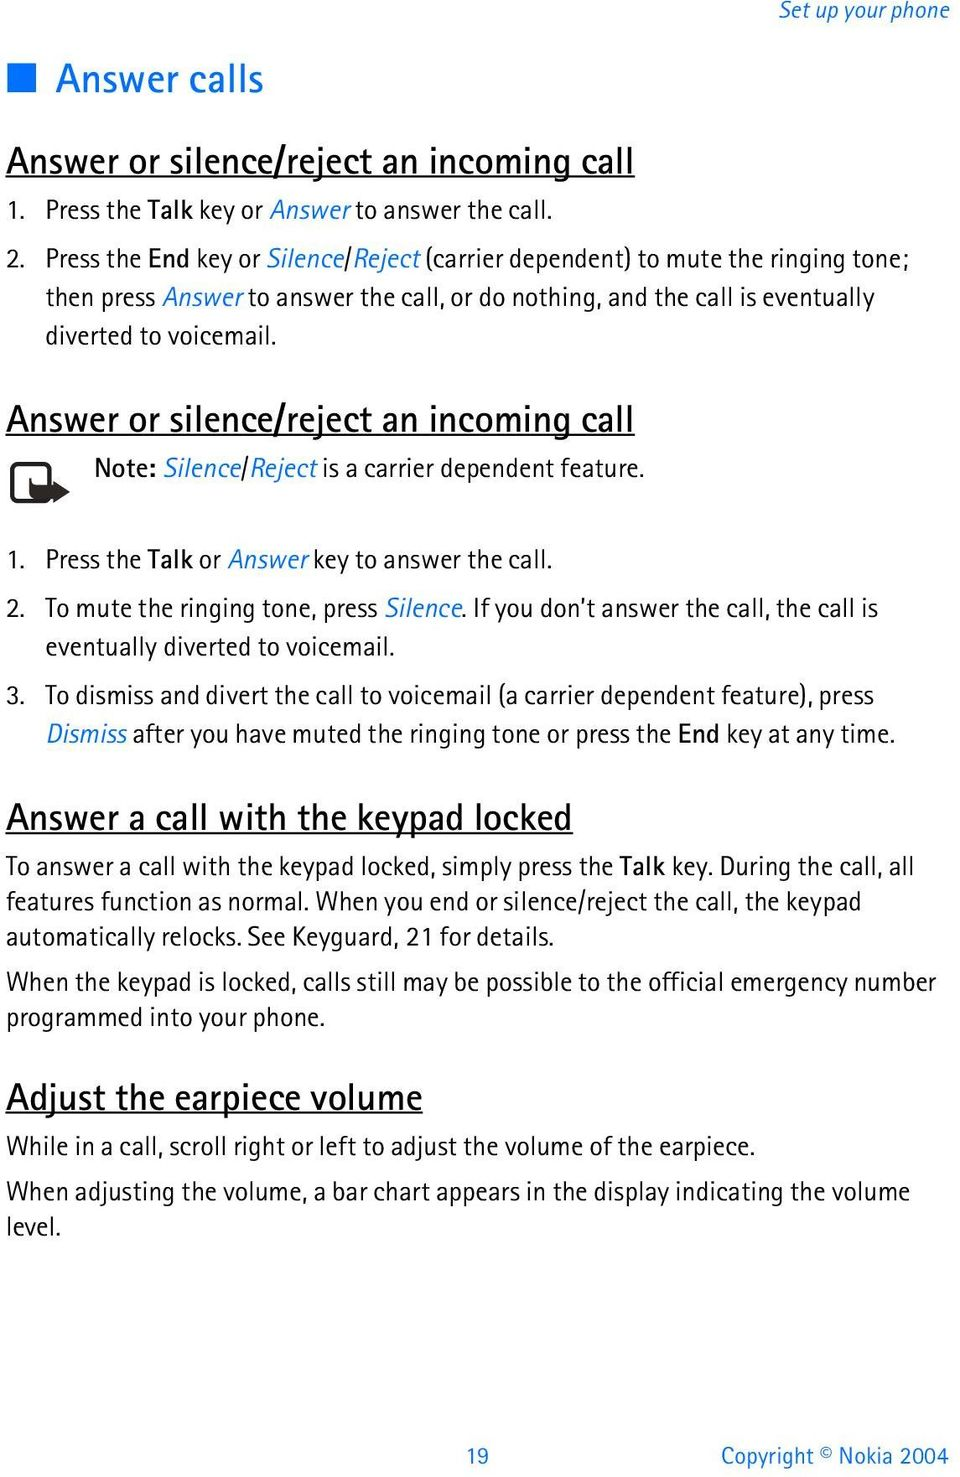 Answer or silence/reject an incoming call Note: Silence/Reject is a carrier dependent feature. 1. Press the Talk or Answer key to answer the call. 2. To mute the ringing tone, press Silence.